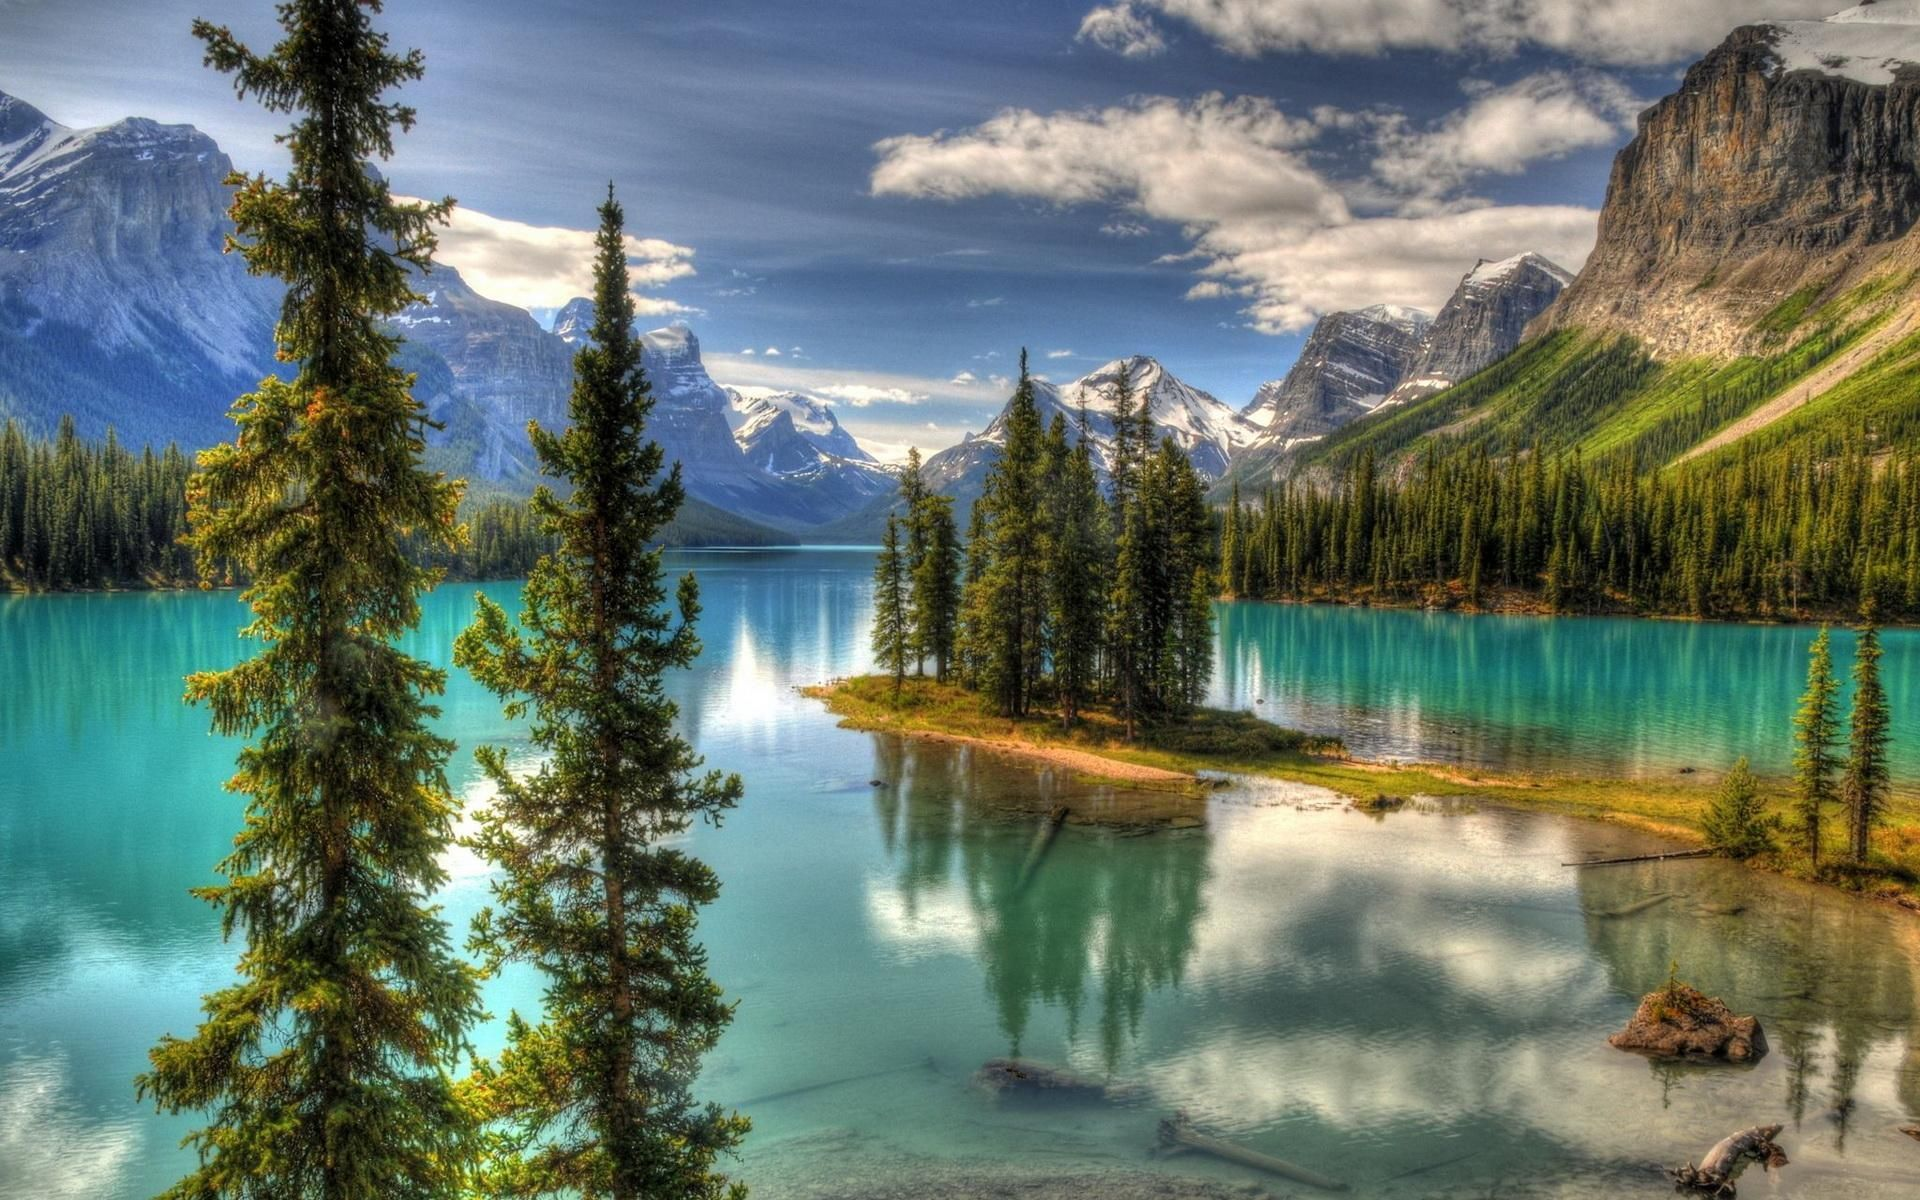 Spirit Island Canada Most Beautiful Picture Of The Day April 14 2017 Http Mostbeautifulpicture Com Canada National Parks Maligne Lake Canada Road Trip